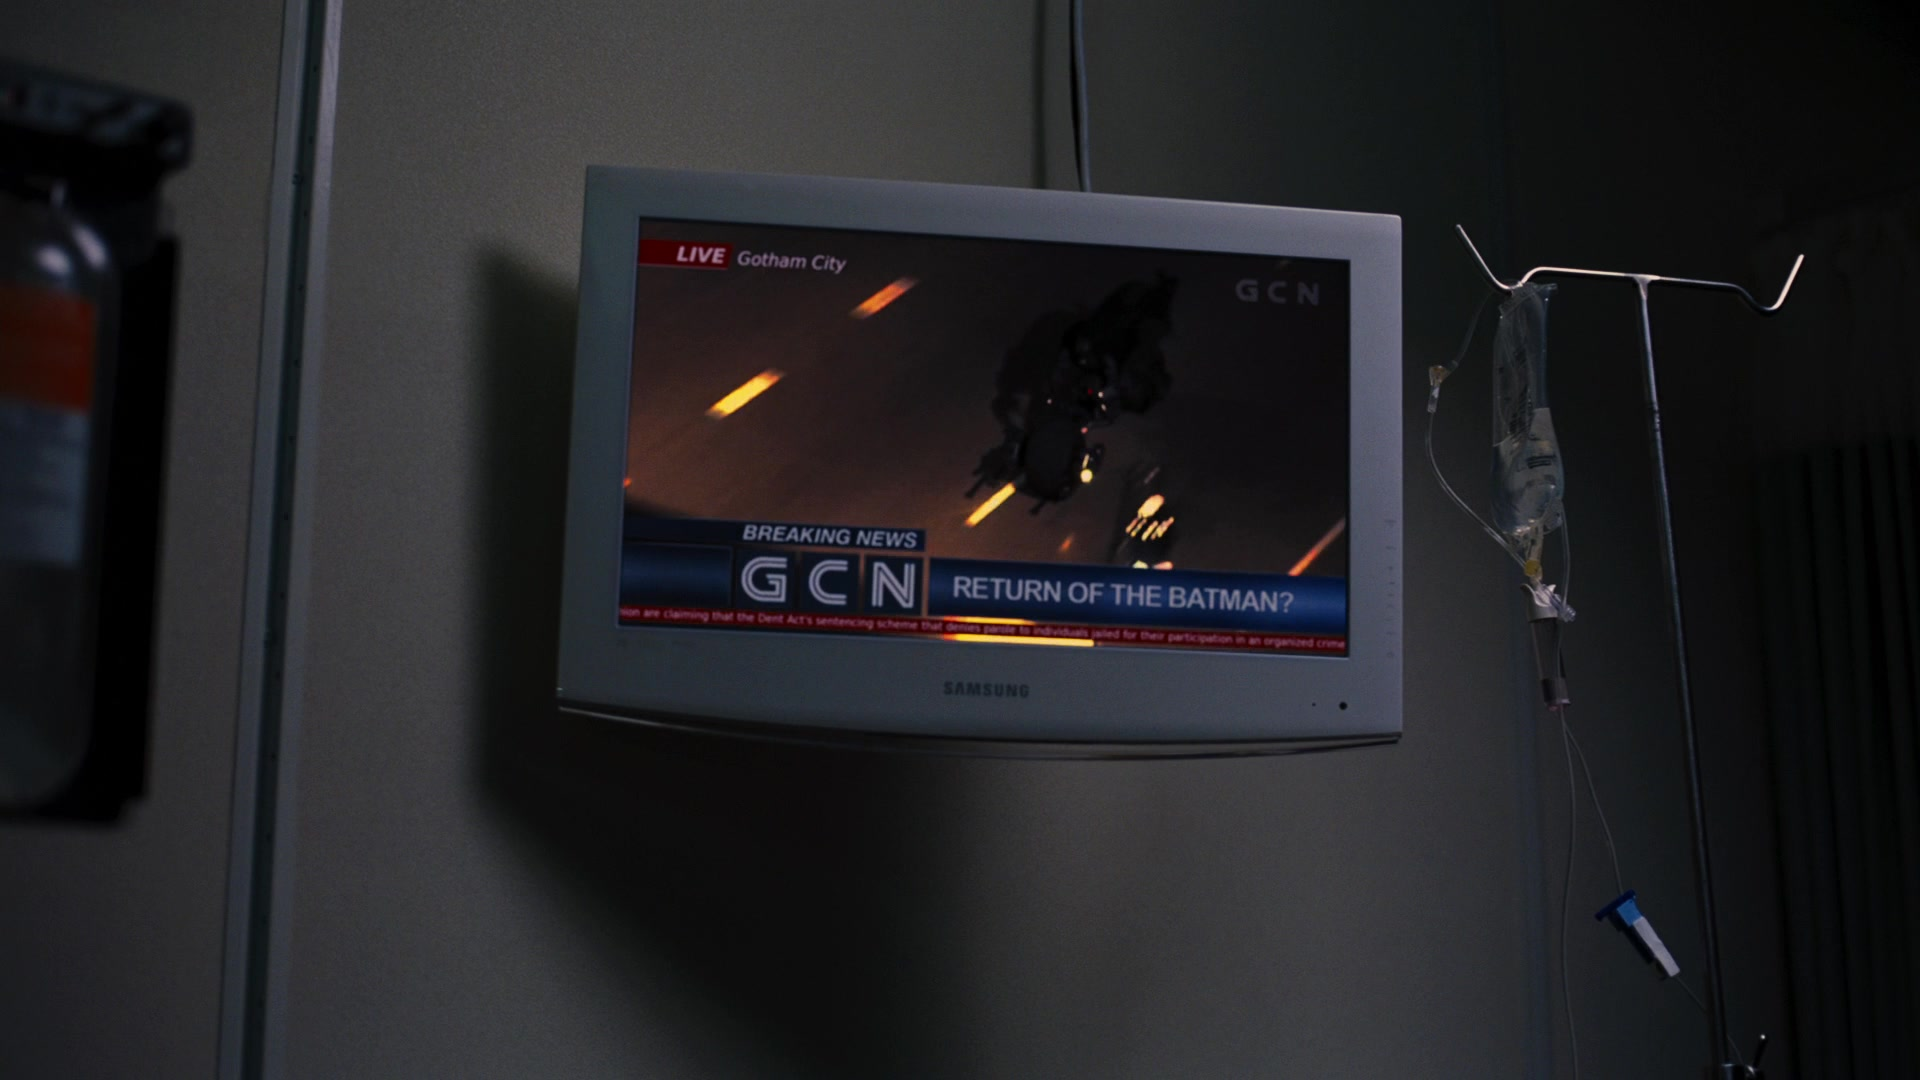 Samsung TVs in THE DARK KNIGHT RISES (2012) - Movie Products